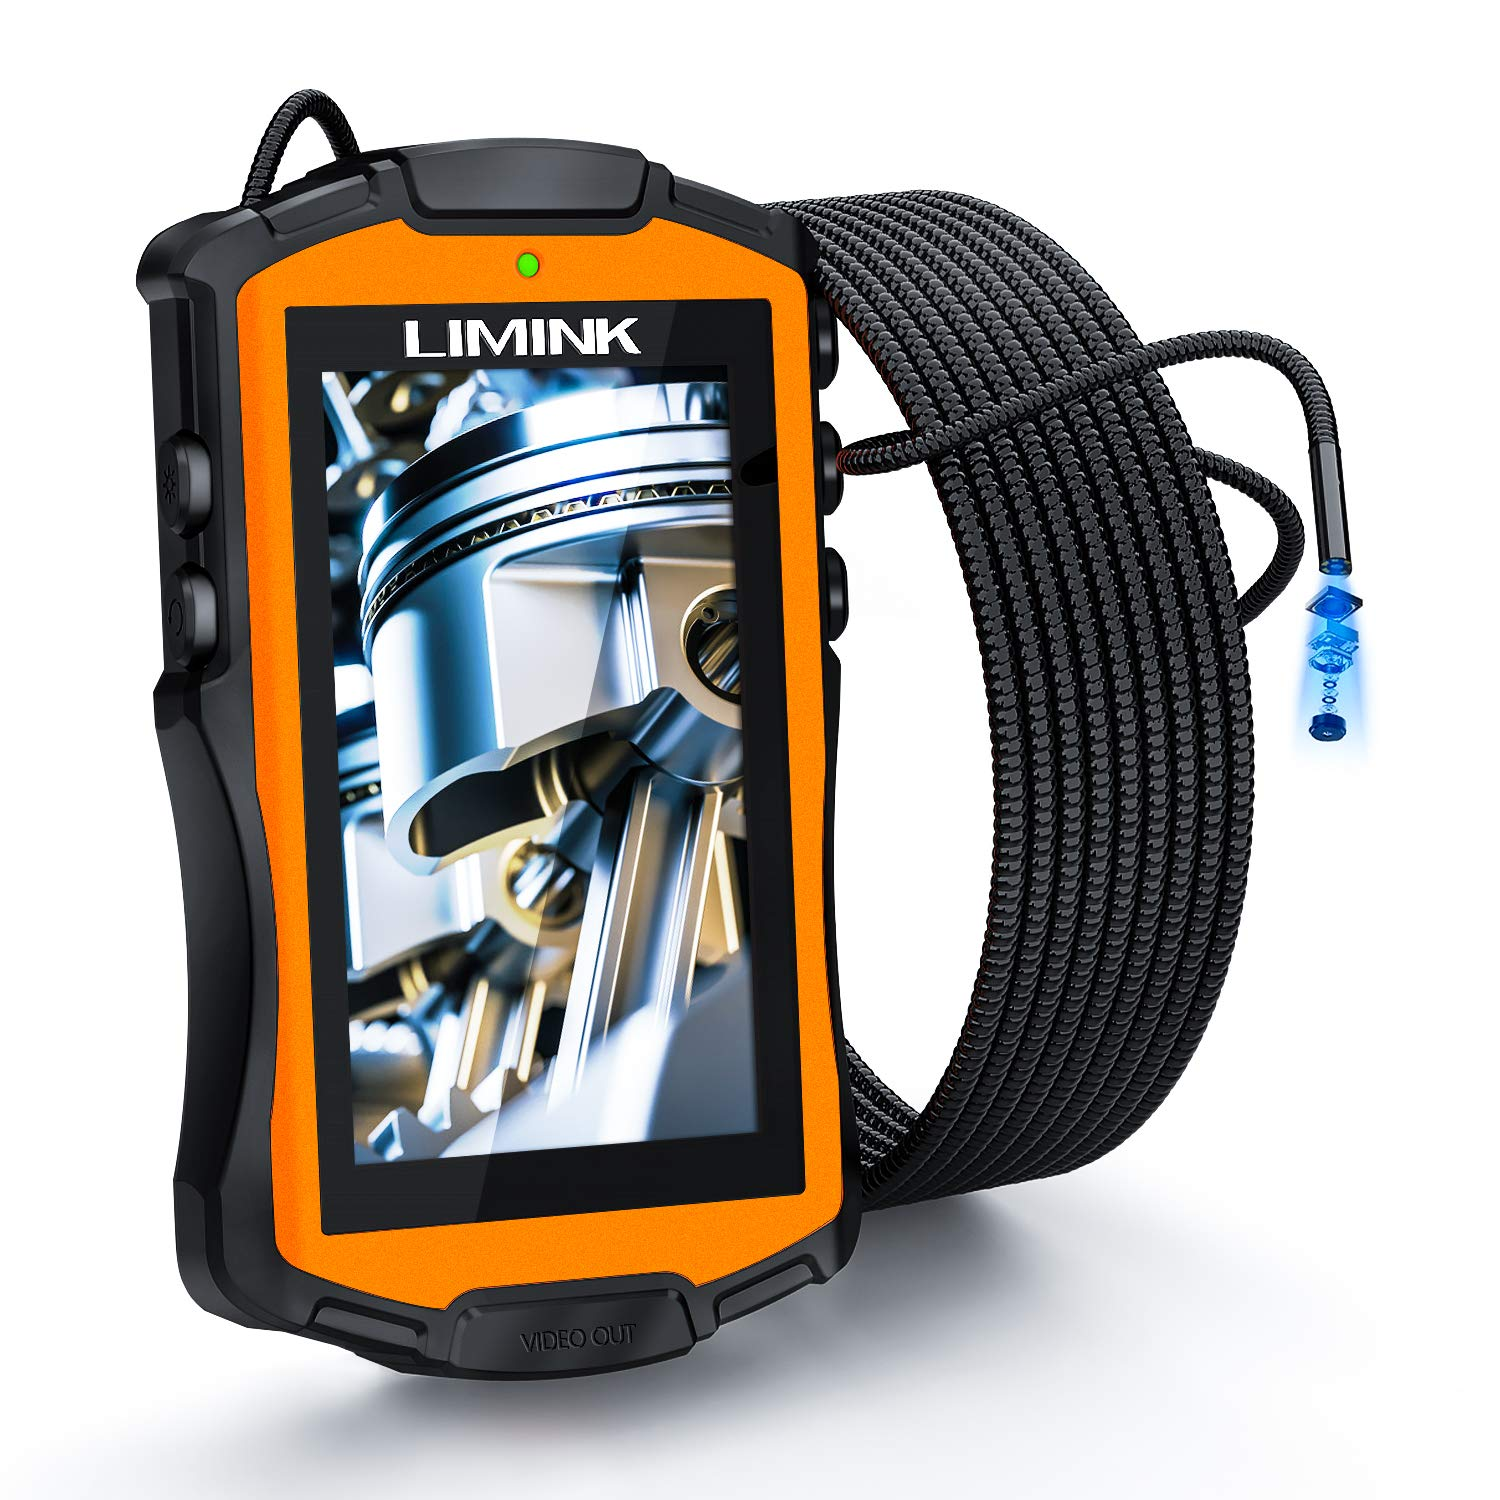 L LIMINK Industrial Endoscope Inspection Camera with 5.3mm Lens & 4.3in LCD Screen Semi-Rigid Snake Camera IP67 Waterproof Borescope with LED Lights - 9.8FT/3M by L LIMINK